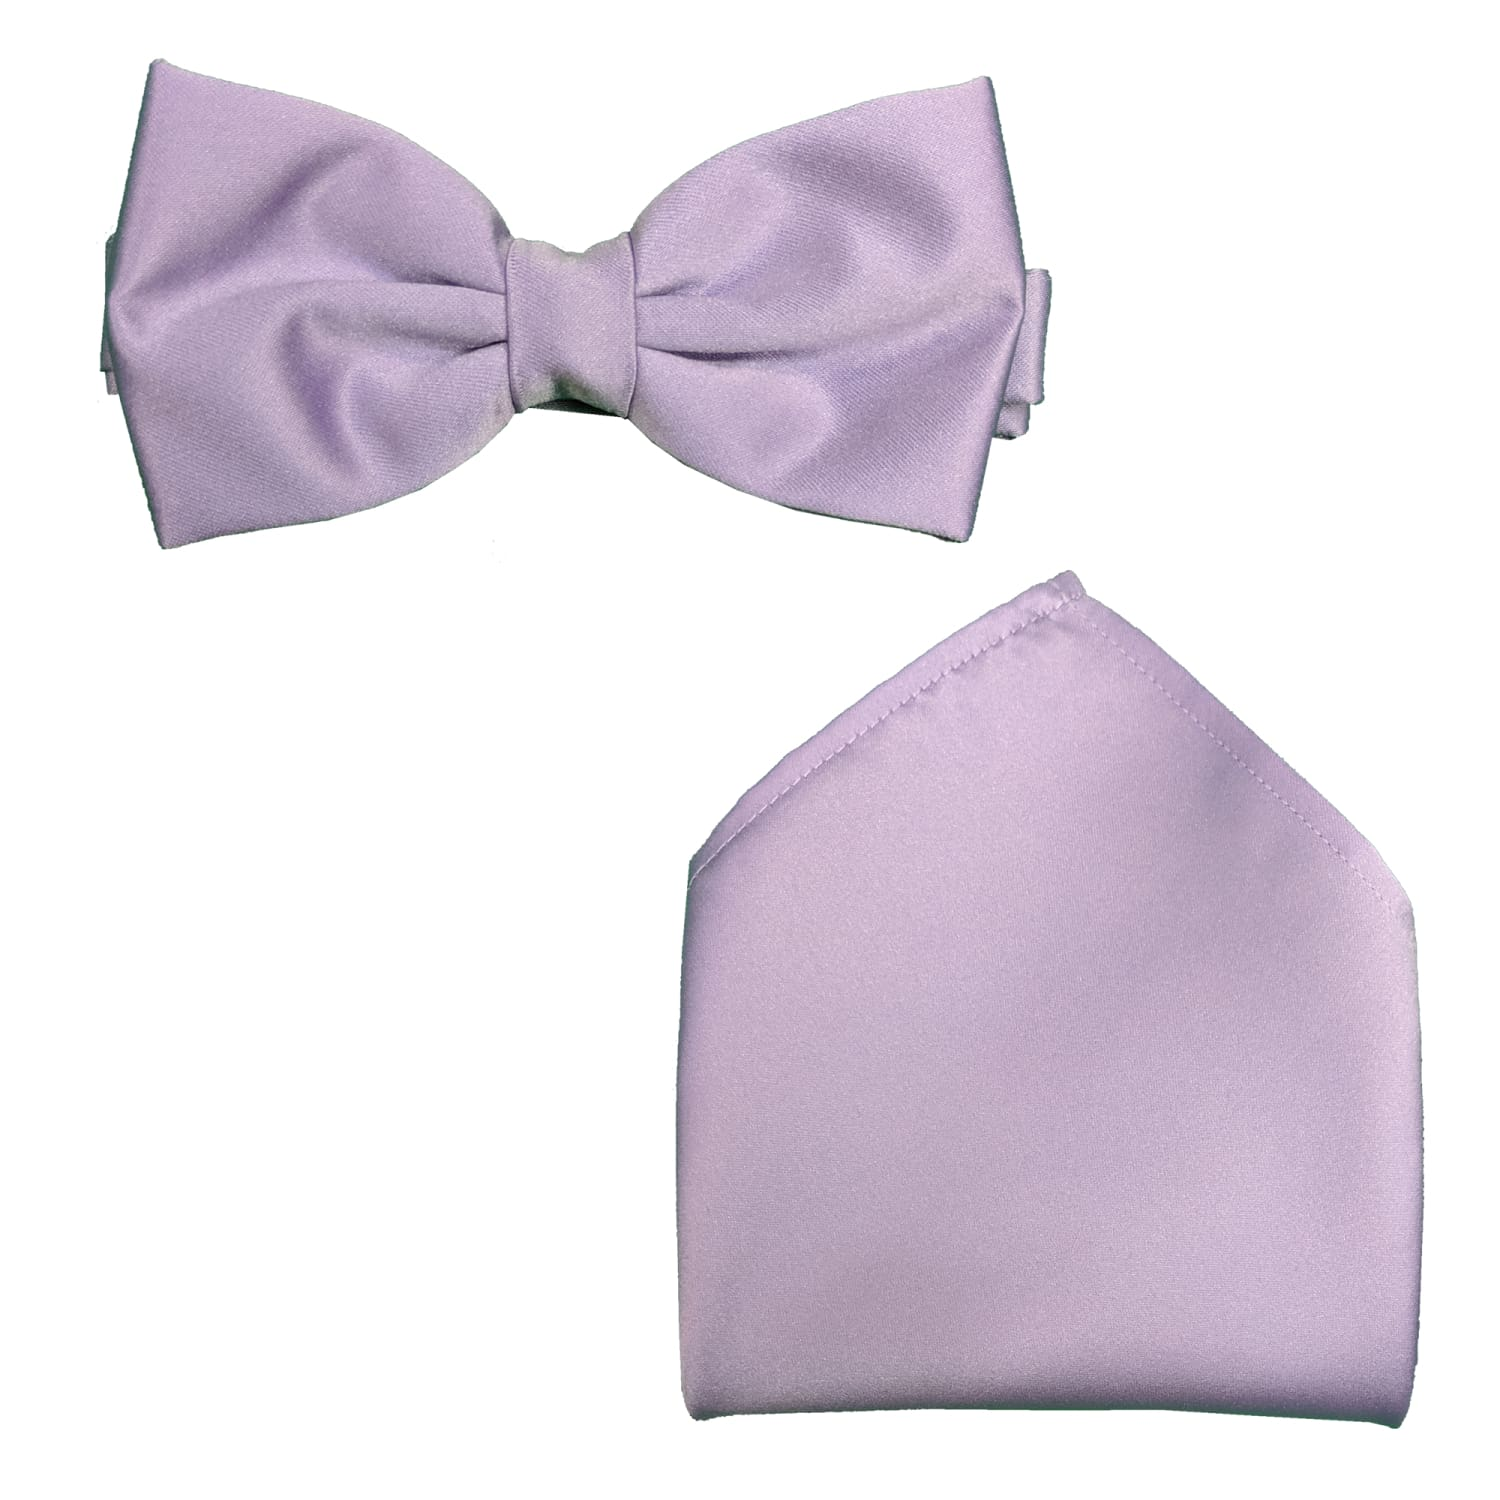 Folkespeare Bow Tie & Pocket Square Set - BK0030 - Lilac 1